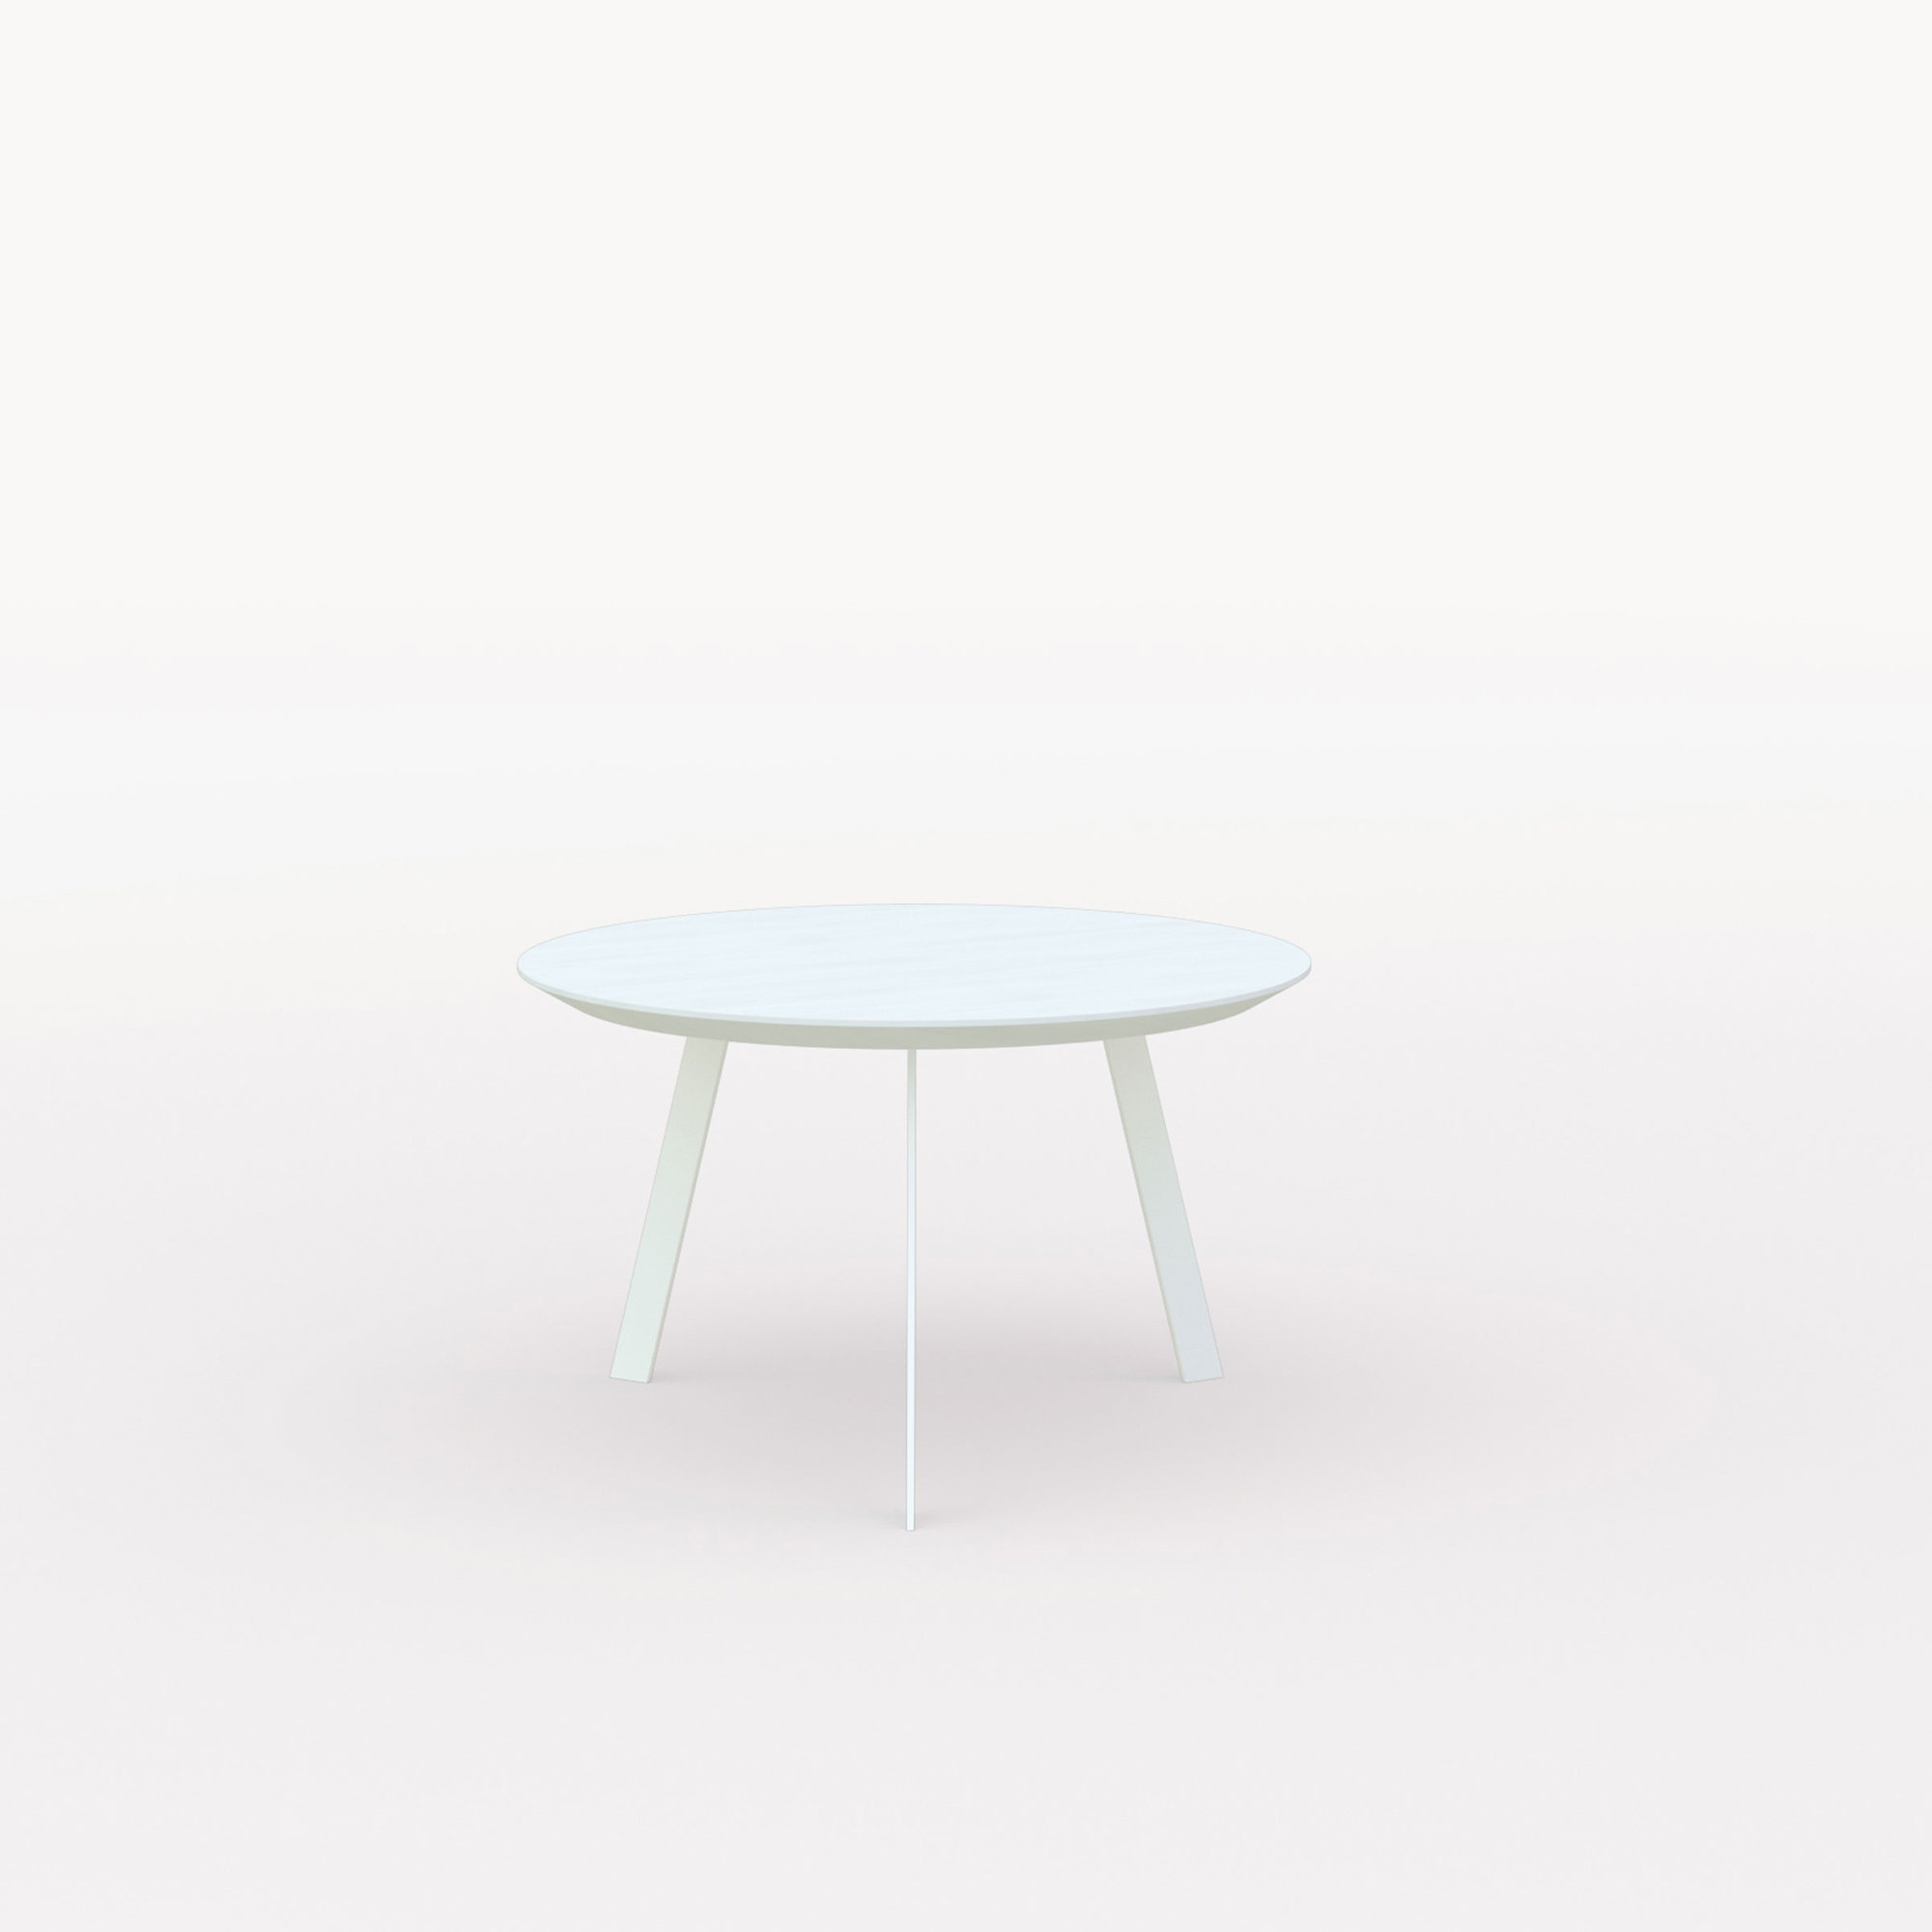 Design salontafel | New Co Coffee Table 70 Round White | Oak white lacquer | Studio HENK | Listing_image